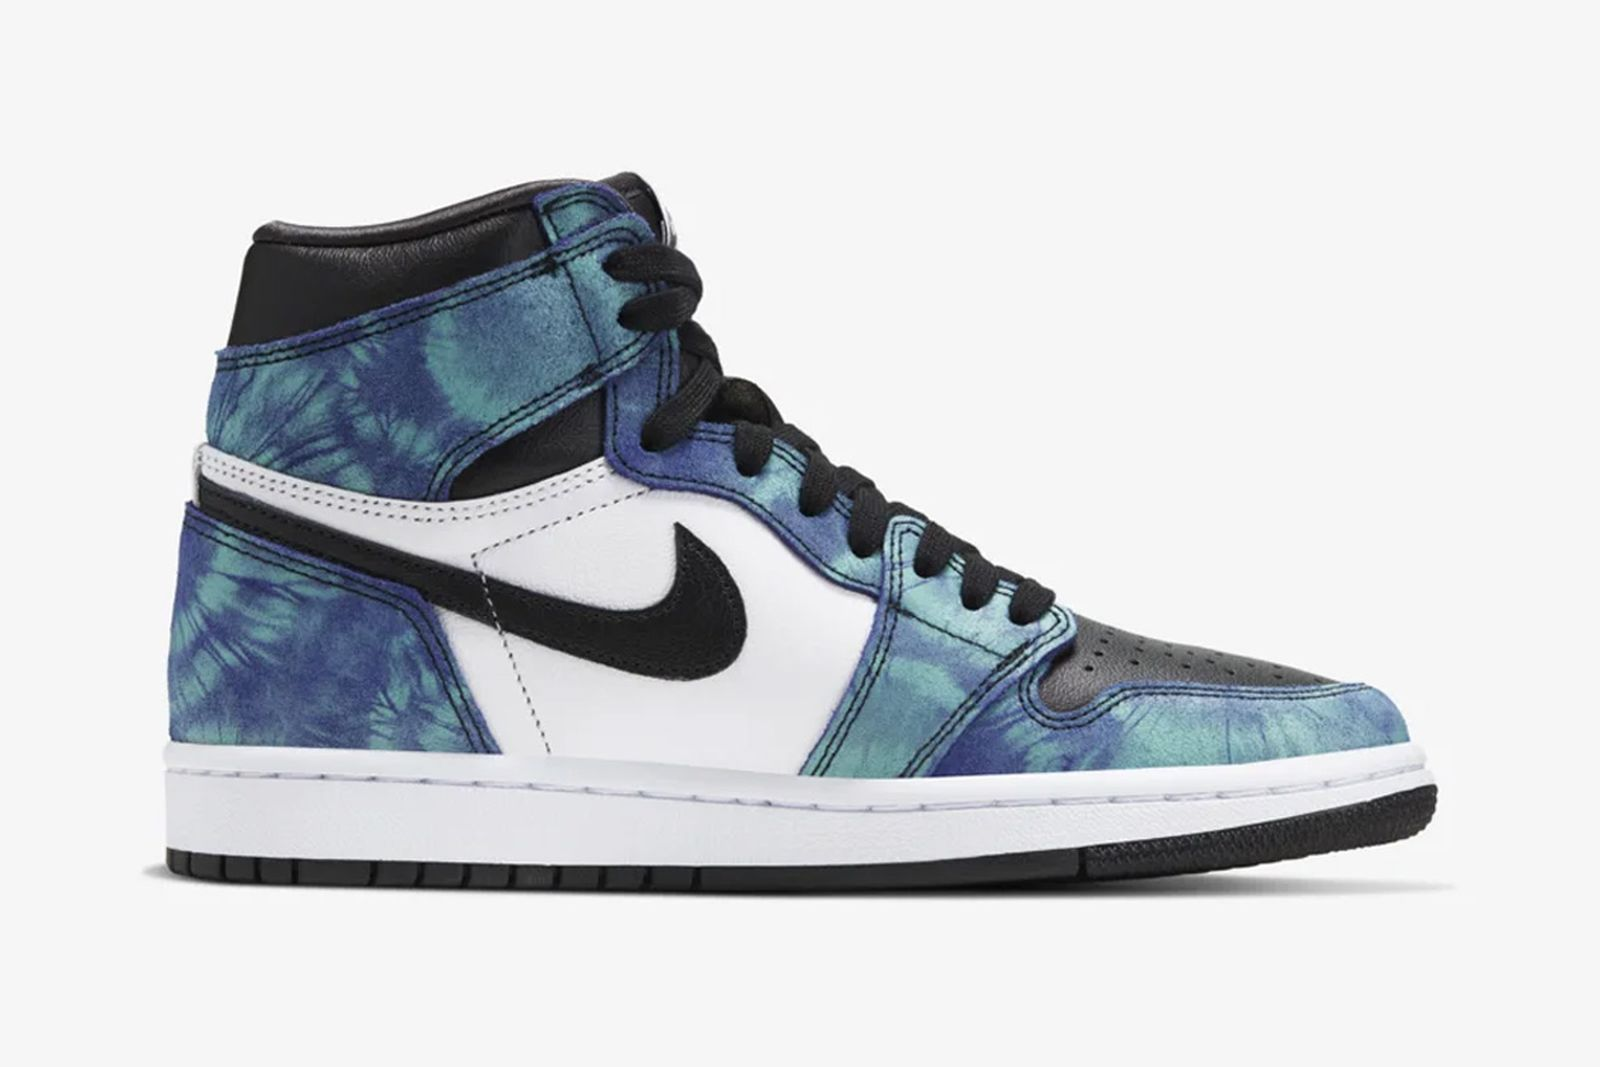 Black and blue tie-dye Nike Air Jordan 1 view from the side